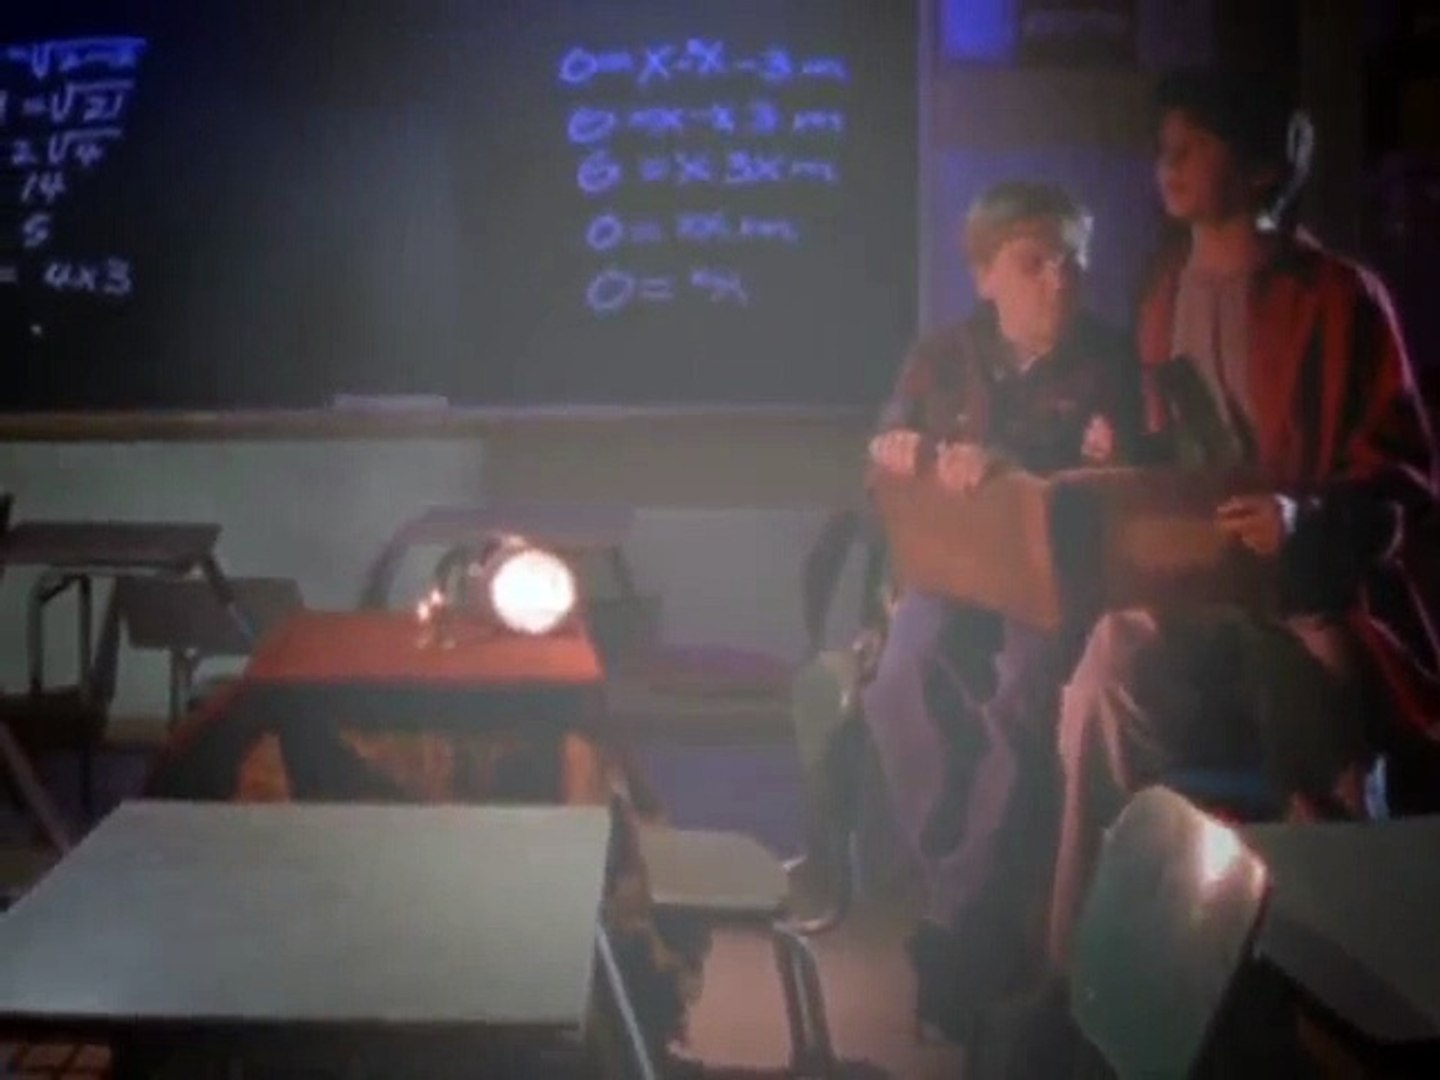 Eerie, Indiana The Other Dimension S01 - Ep02 HD Watch